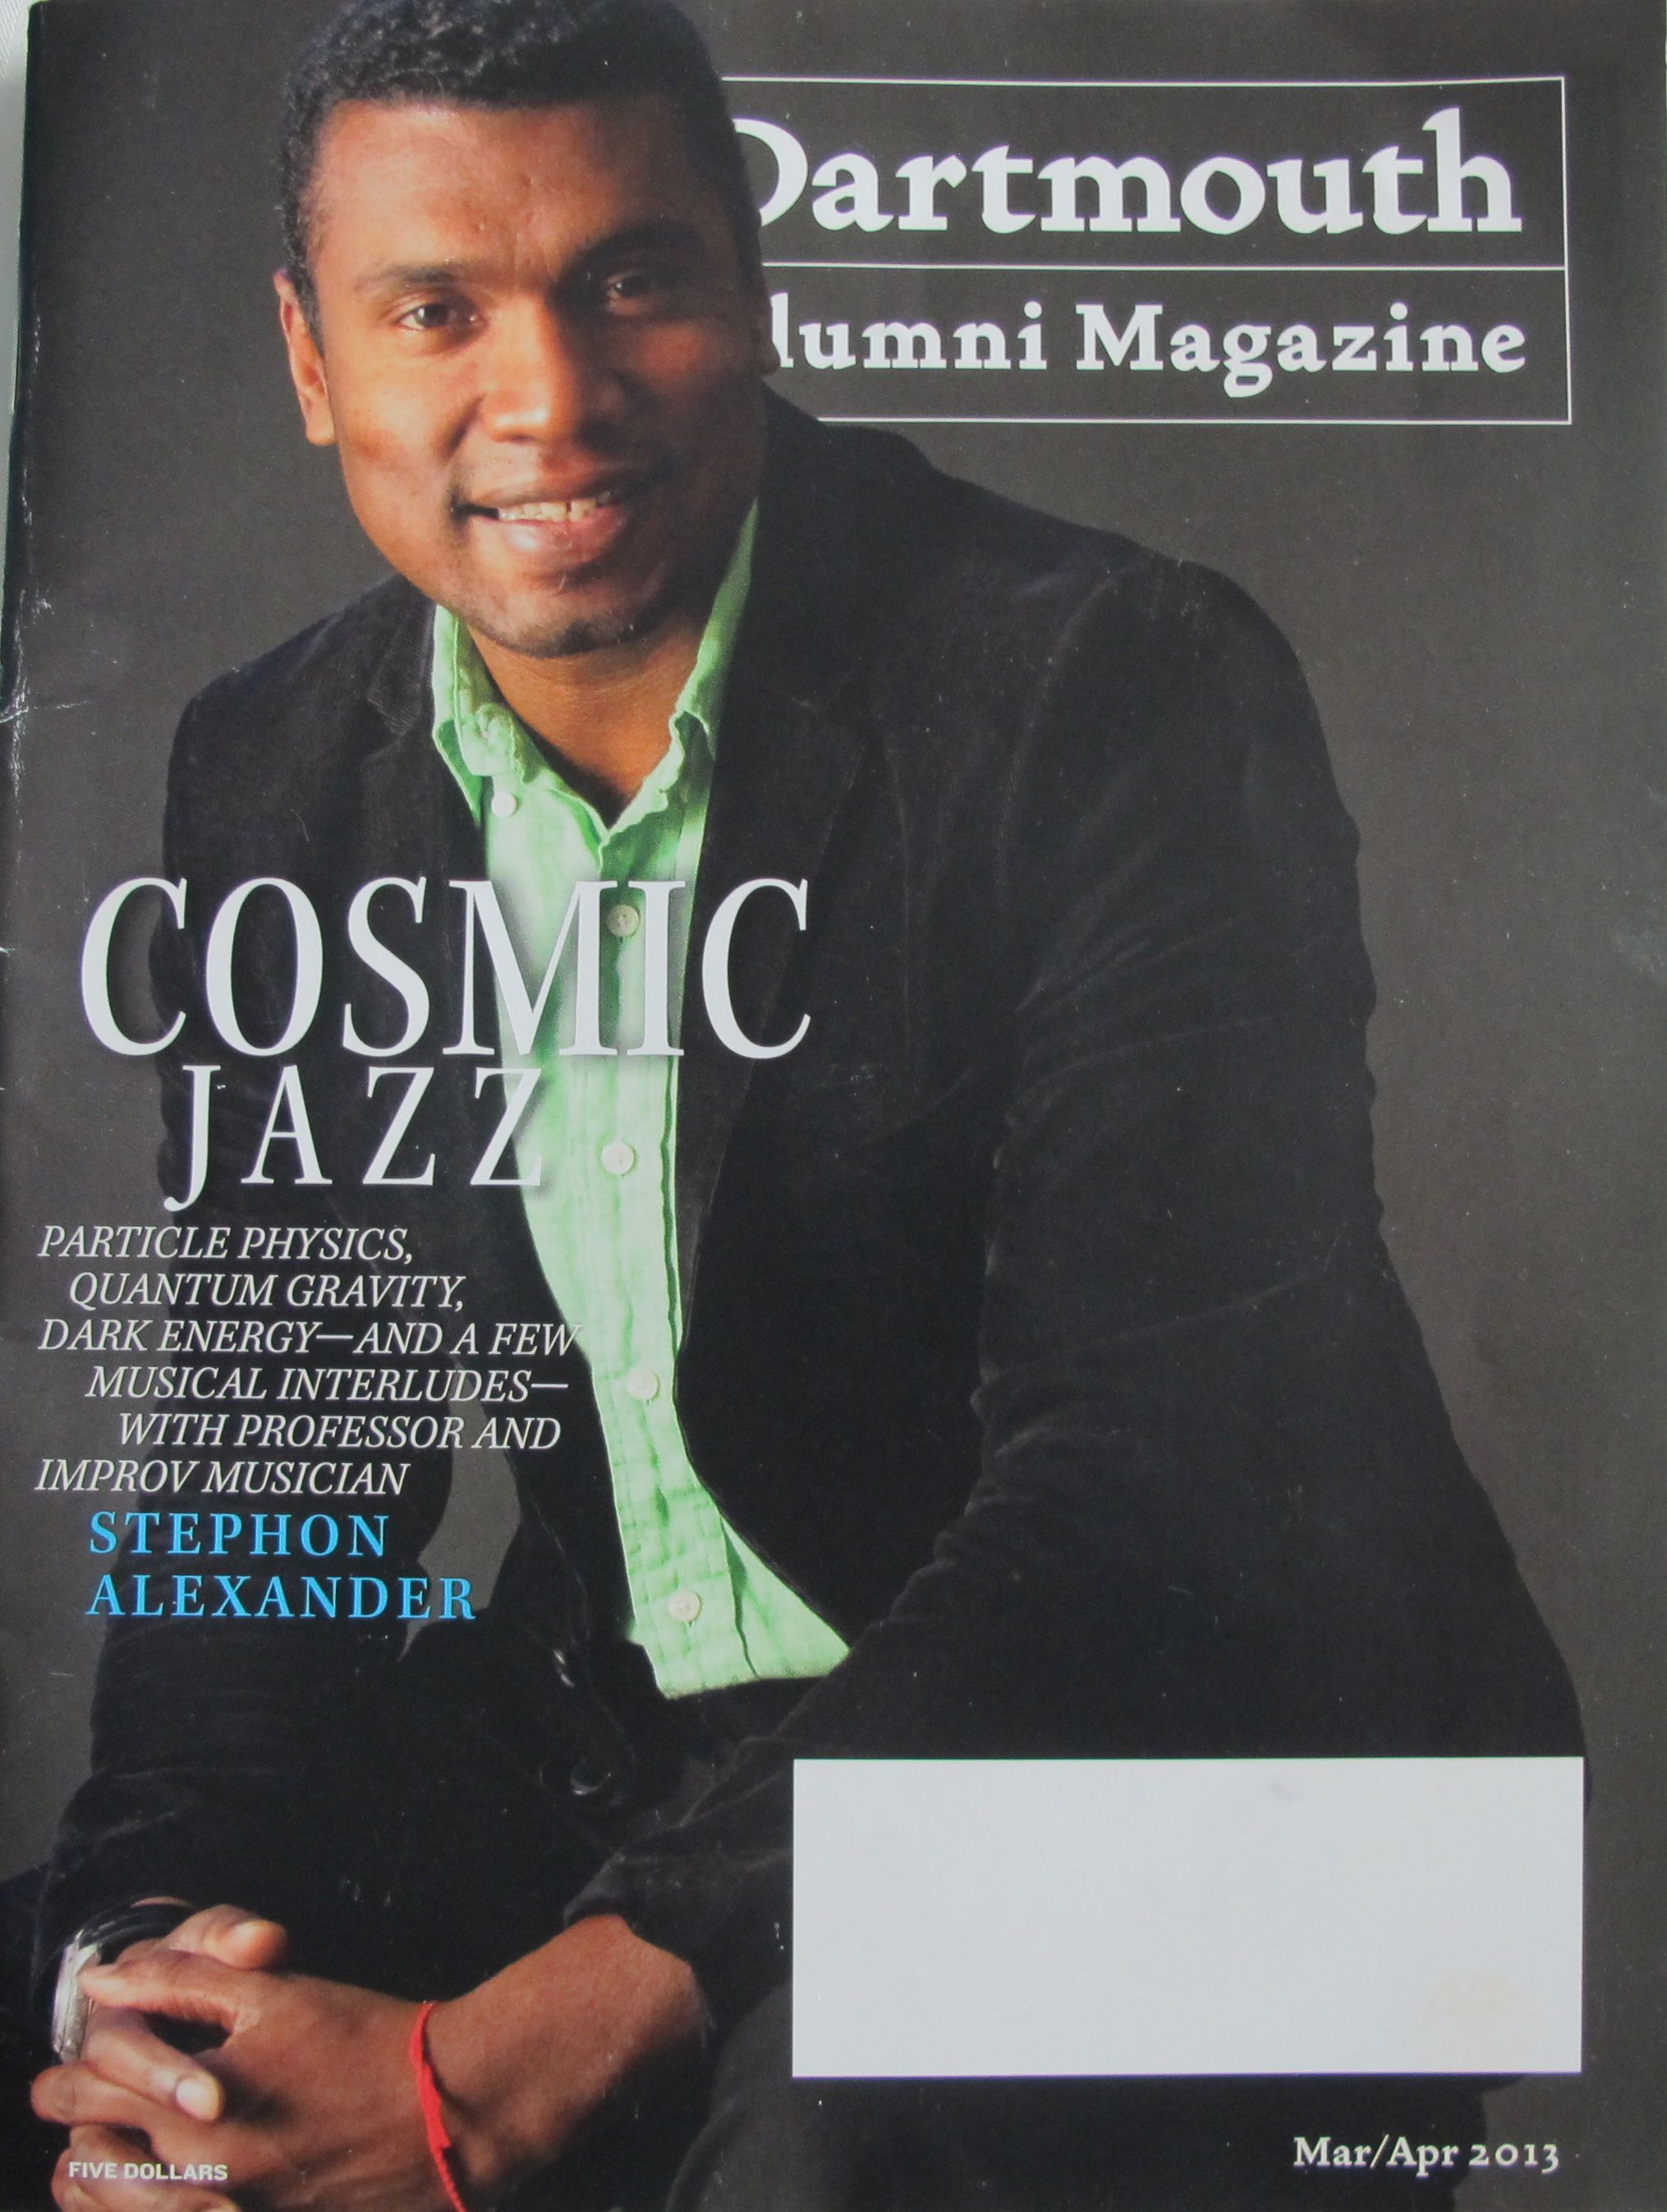 We didn't realize when we set up our meeting with Stephon Alexander that he was the cover subject of the latest issue of the Dartmouth Alumni Magazine.